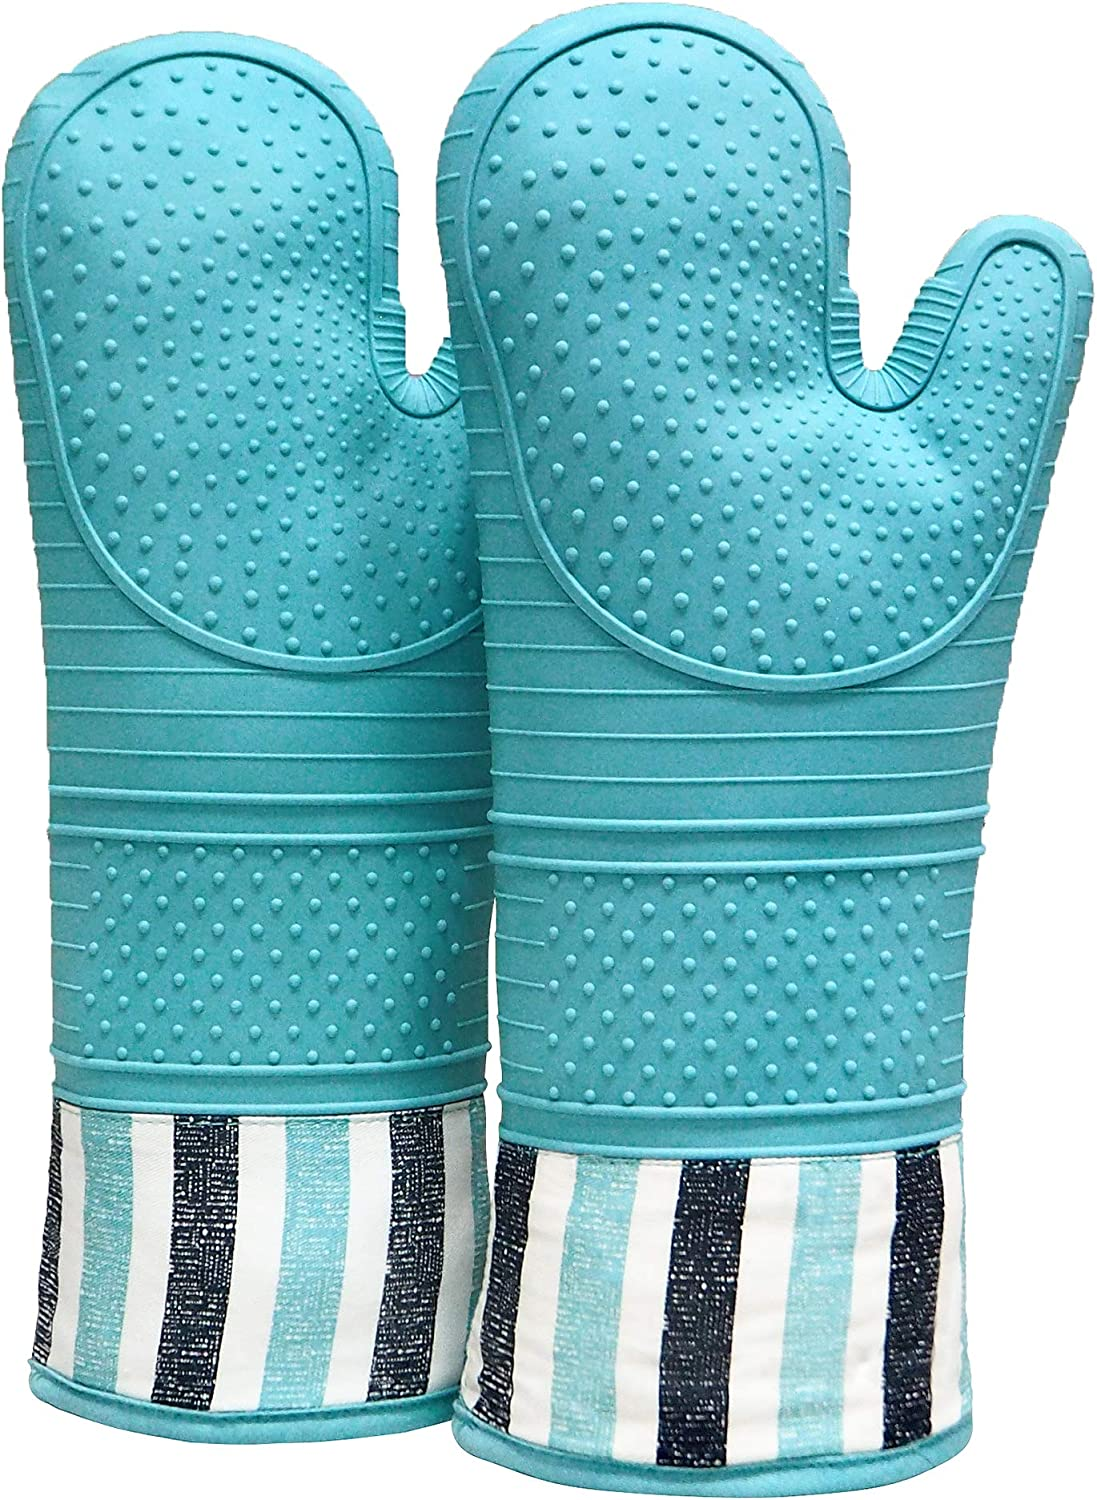 Oven Mini Mitts 1 Pair Heat Resistant Anti-scald Gloves Pot holders 2pc